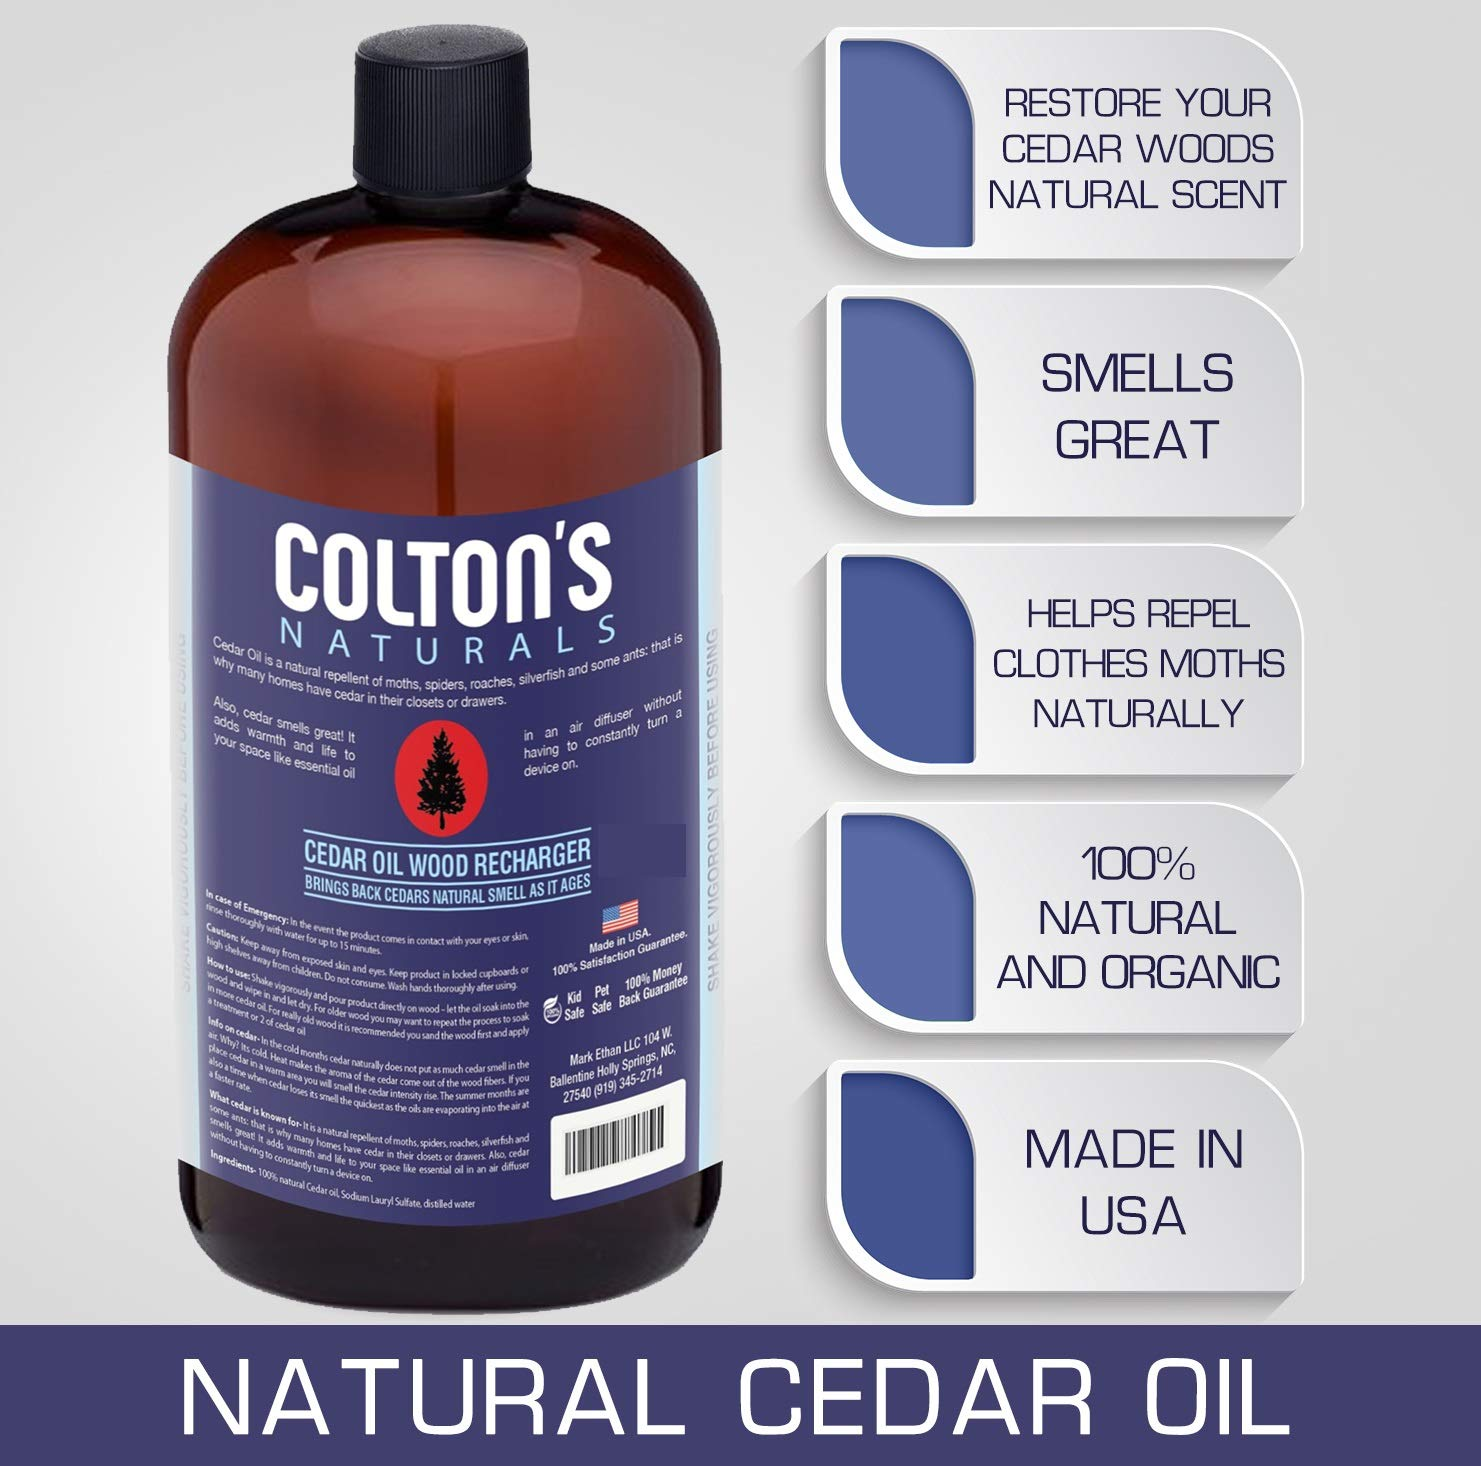 Colton's Naturals Cedar Oil Wood Replenish Original Cedar Scent Restore (32 Ounces) by Colton's Naturals (Image #1)